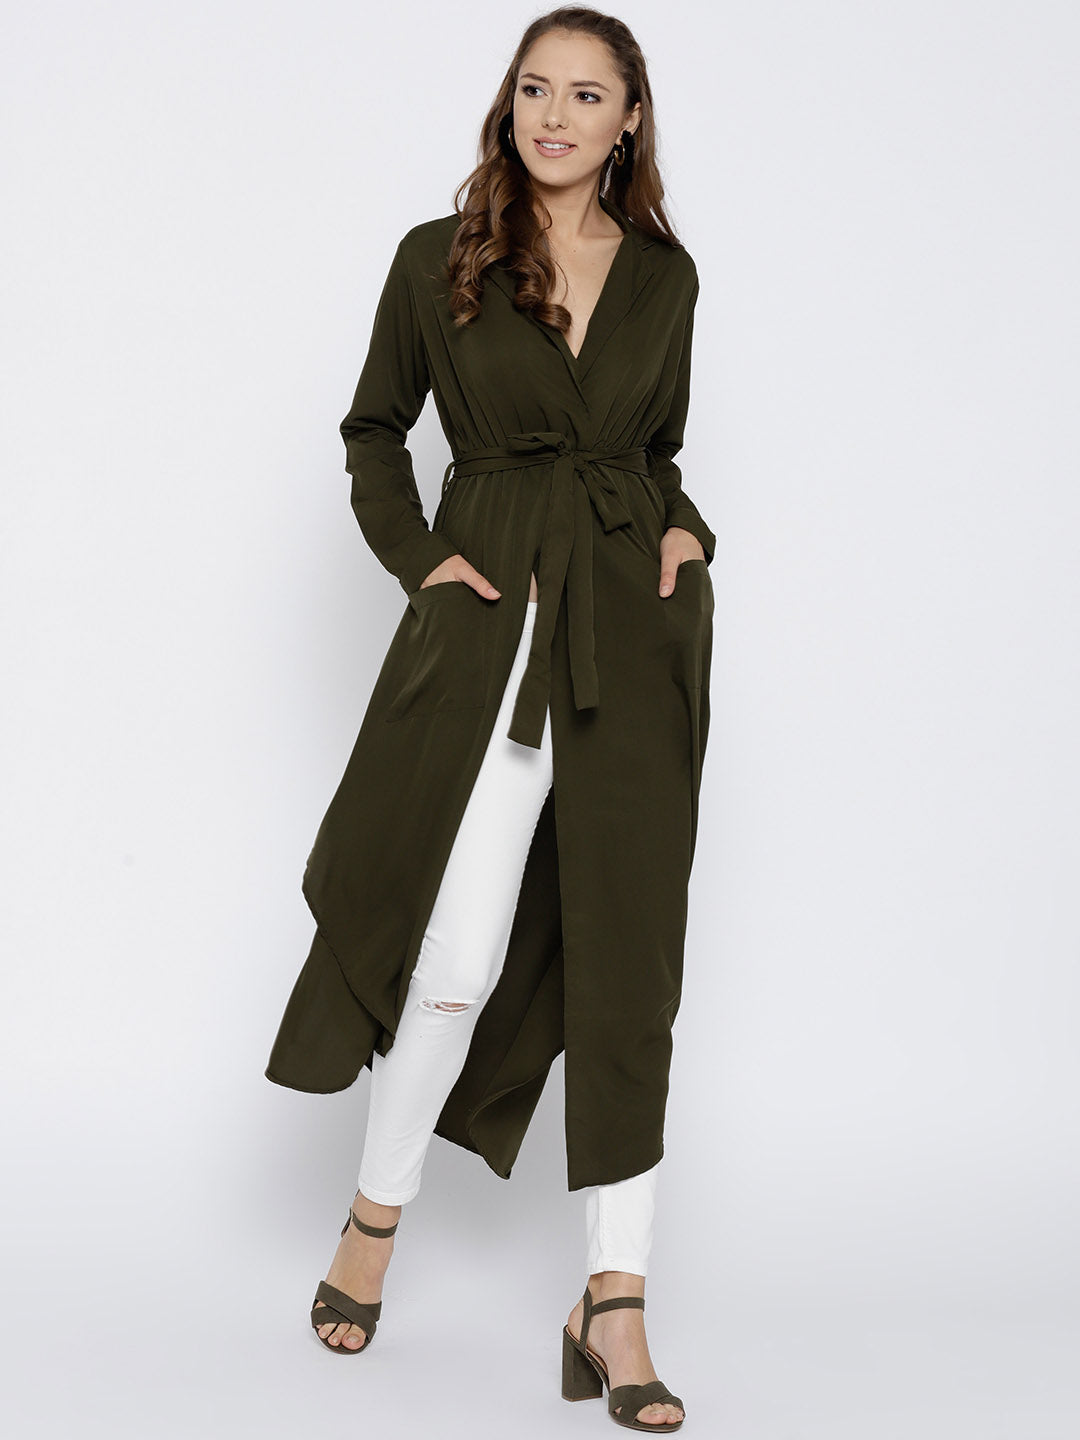 Olive Green Solid Maxi Top - Berrylush